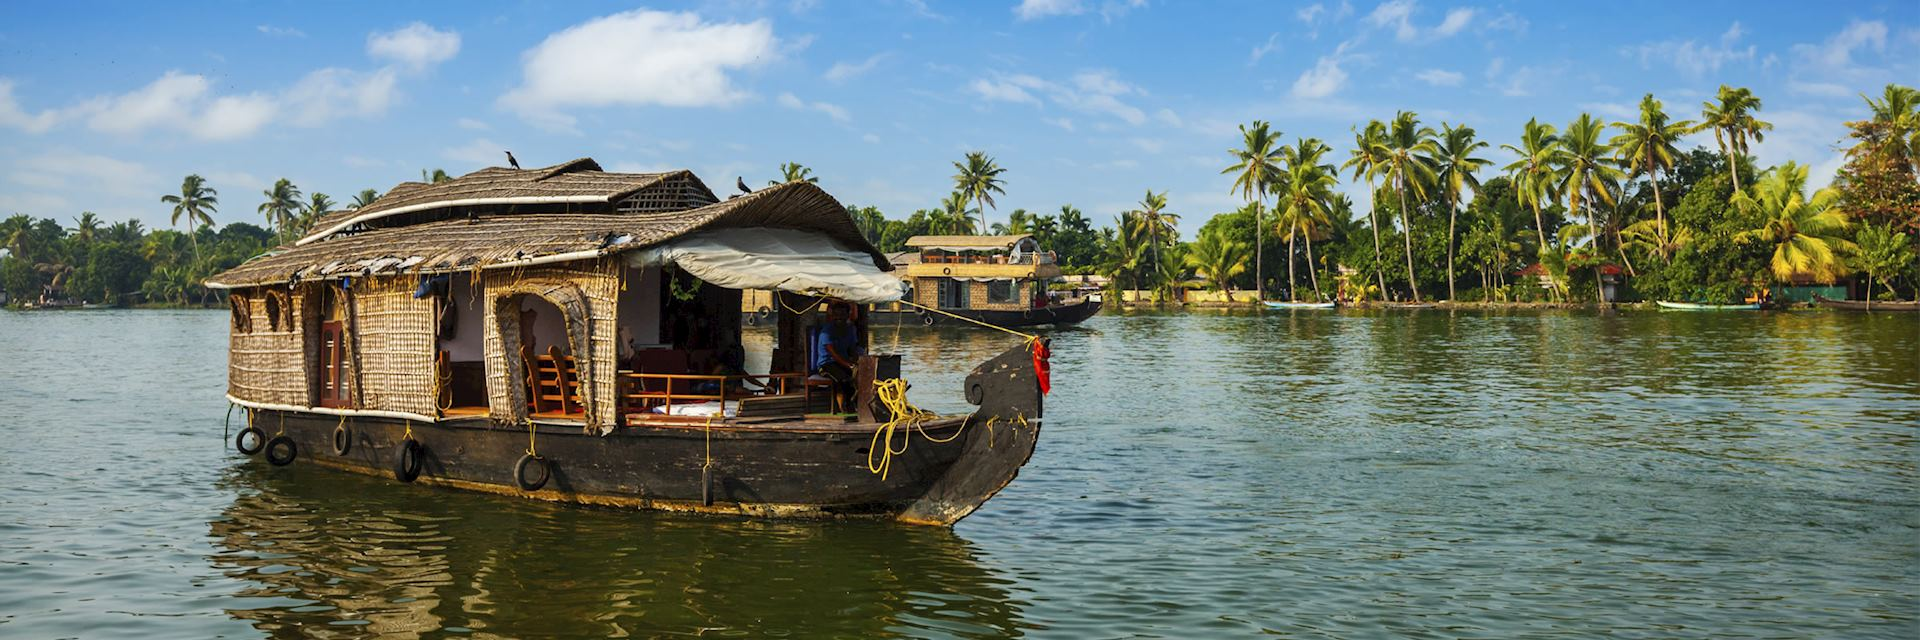 Houseboat on the Kerala backwaters